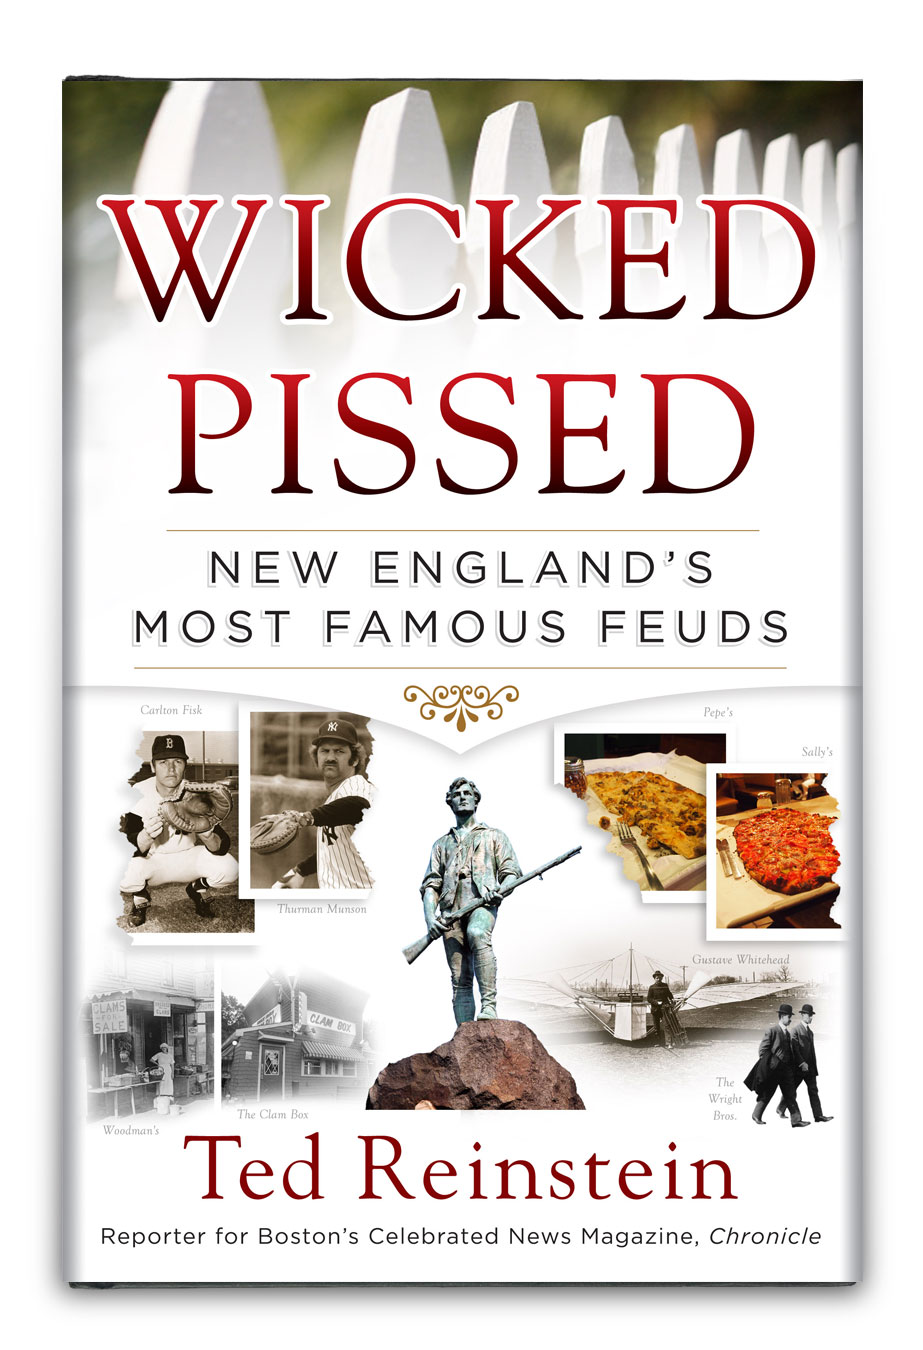 WICKED PISSED